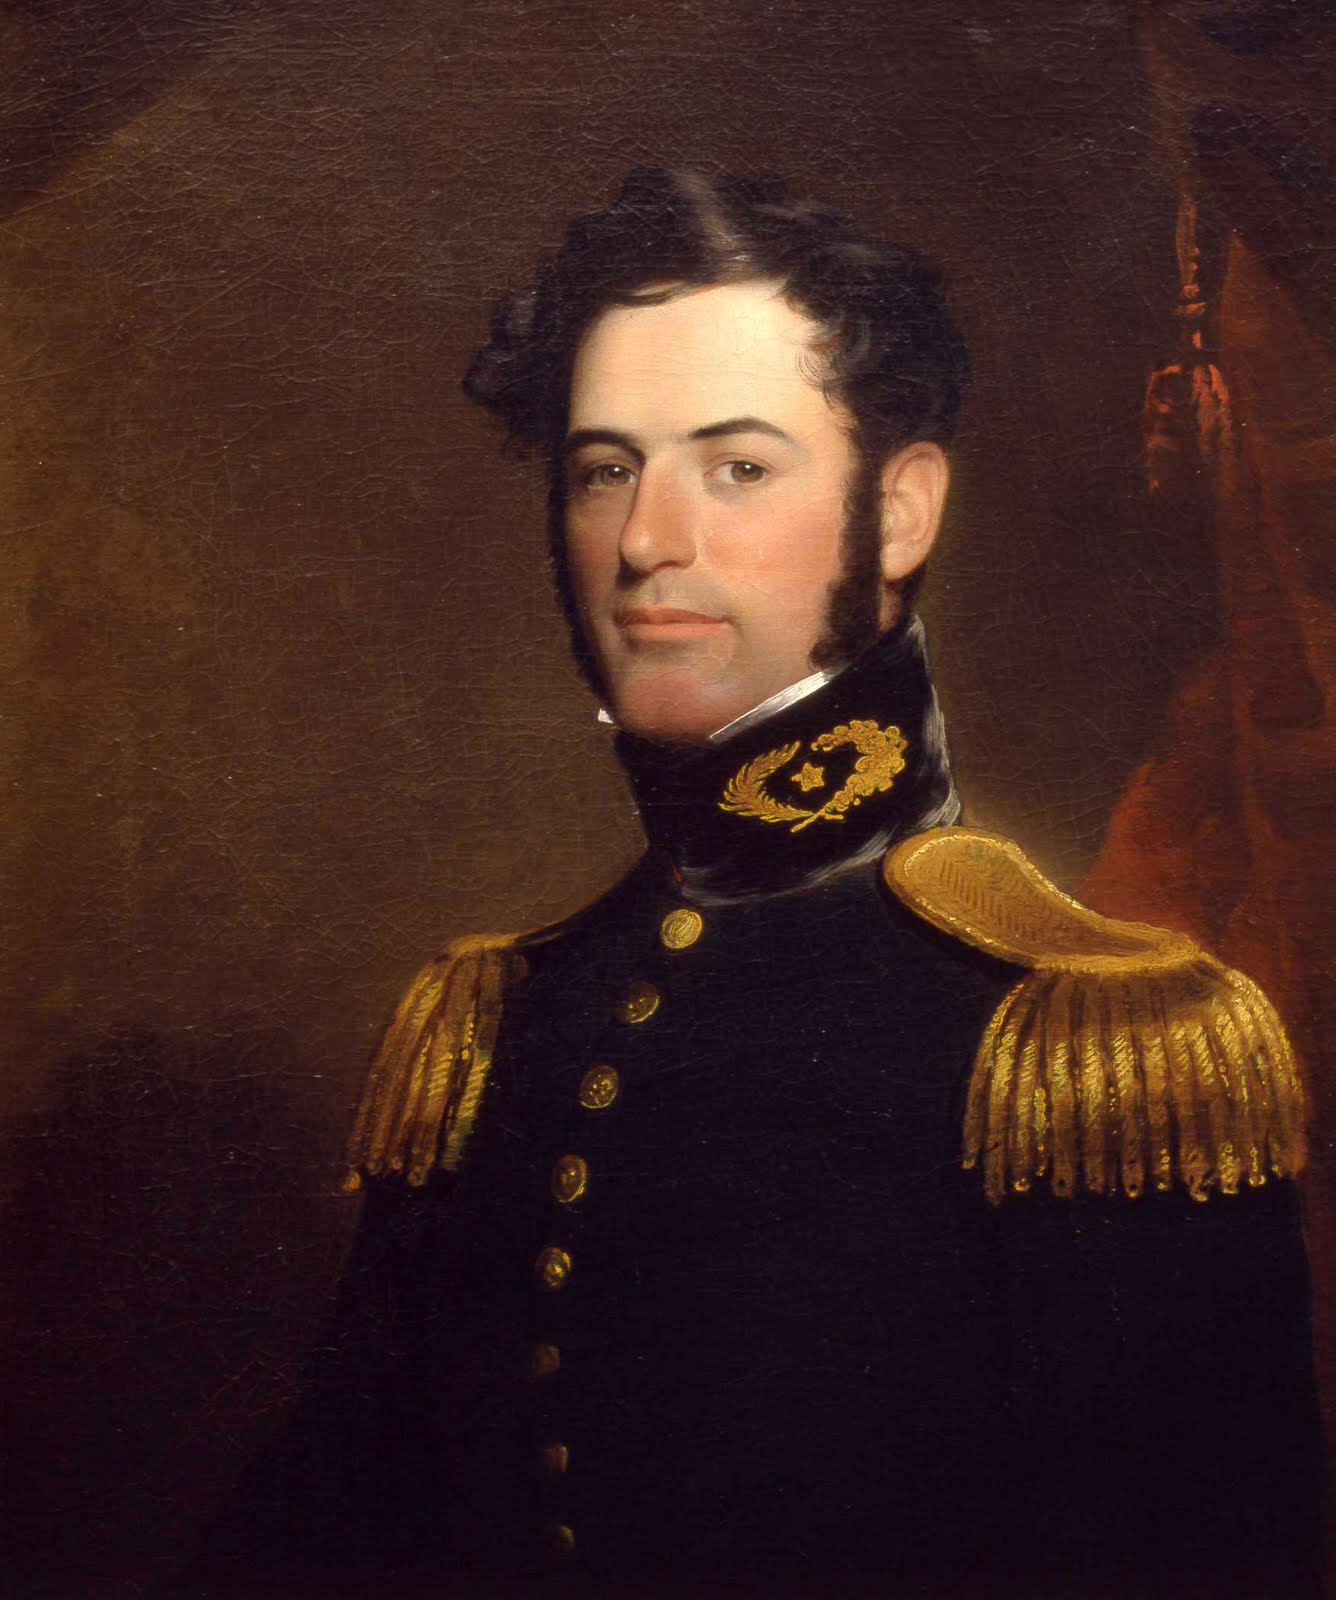 was robert elee a good tactician essay Biography of general robert e lee - including history articles, links, recommended books and more.